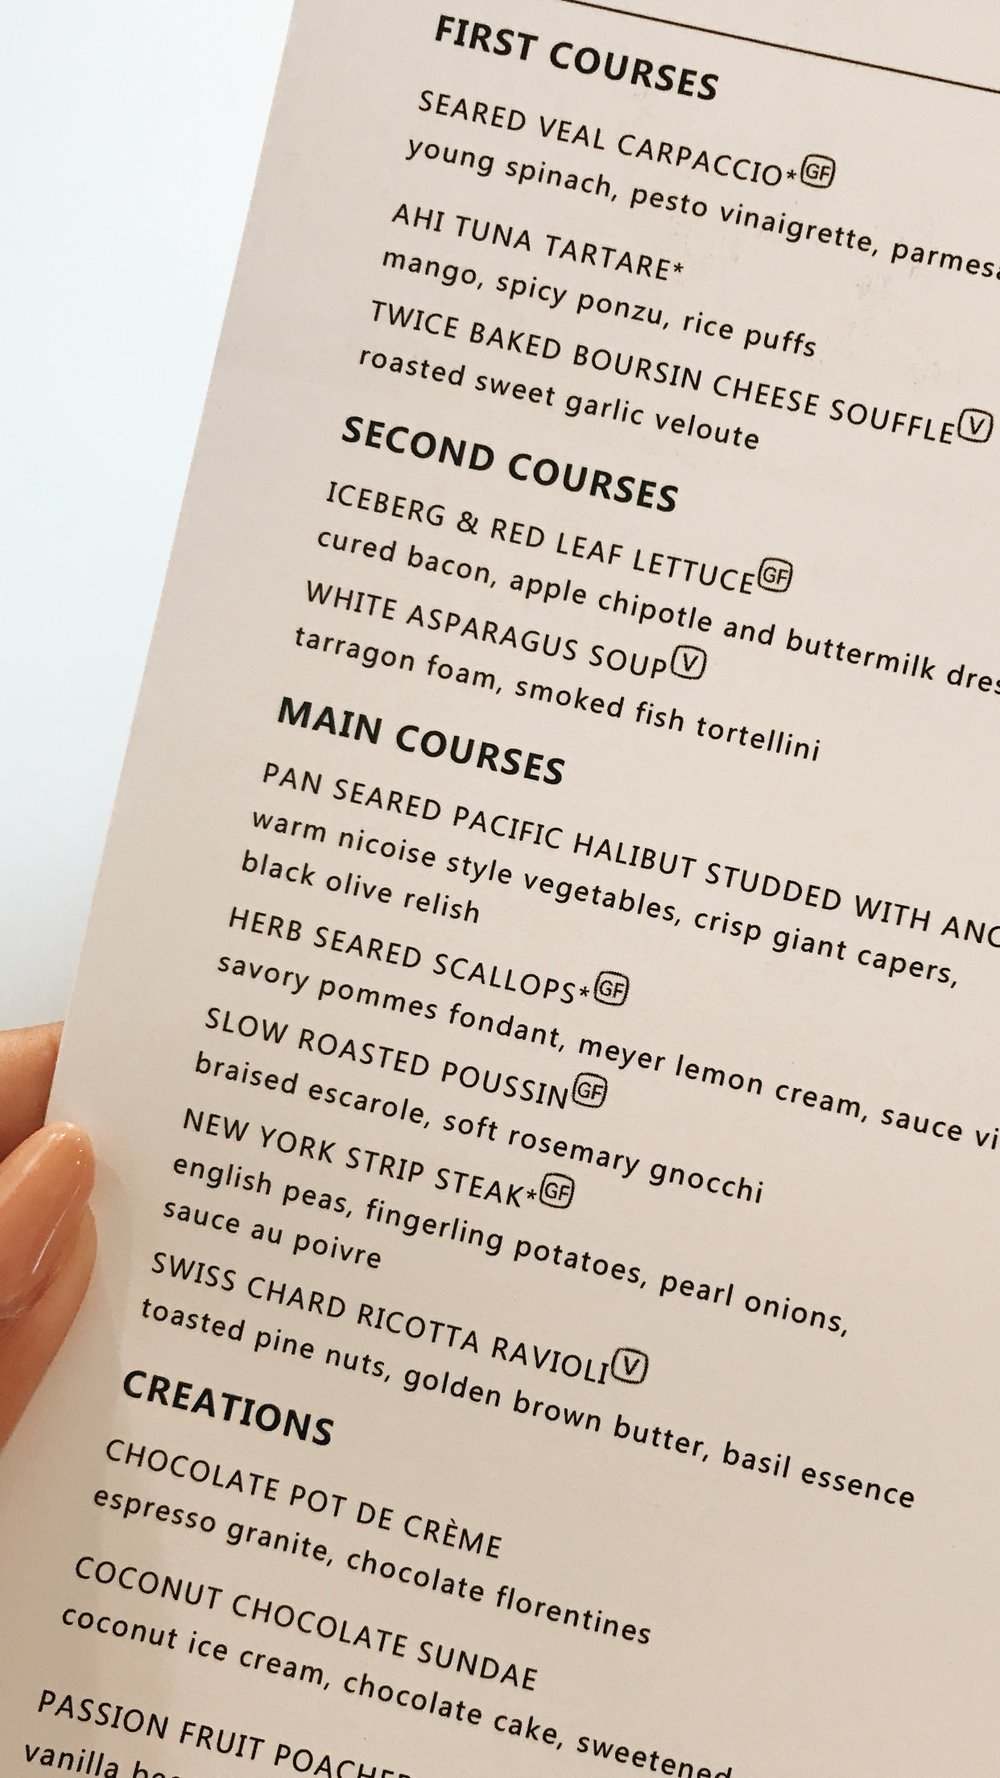 Seabourn Cruise Menu